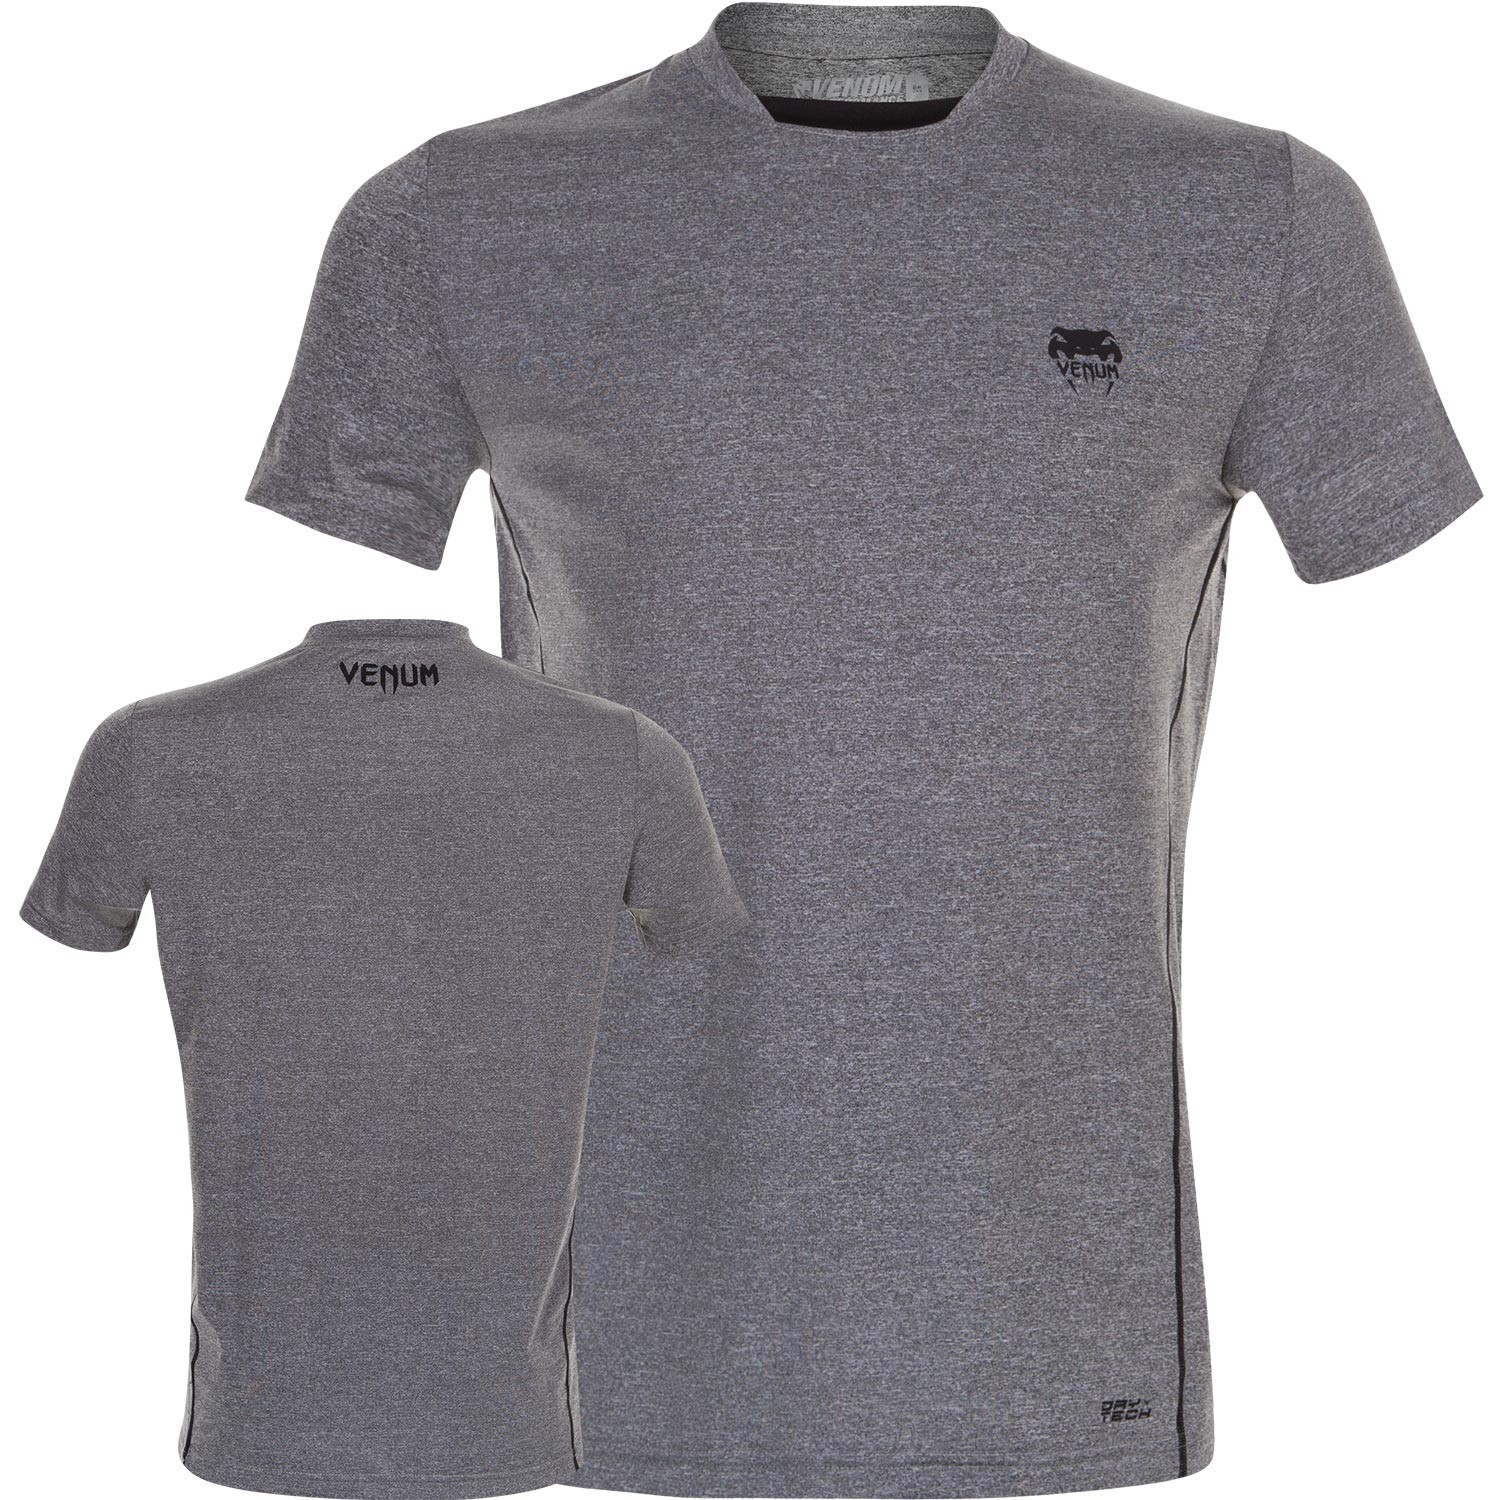 Футболка Venum Contender Dry Tech T-Shirt - Heather Grey<br>Вес кг: 0.00000000;